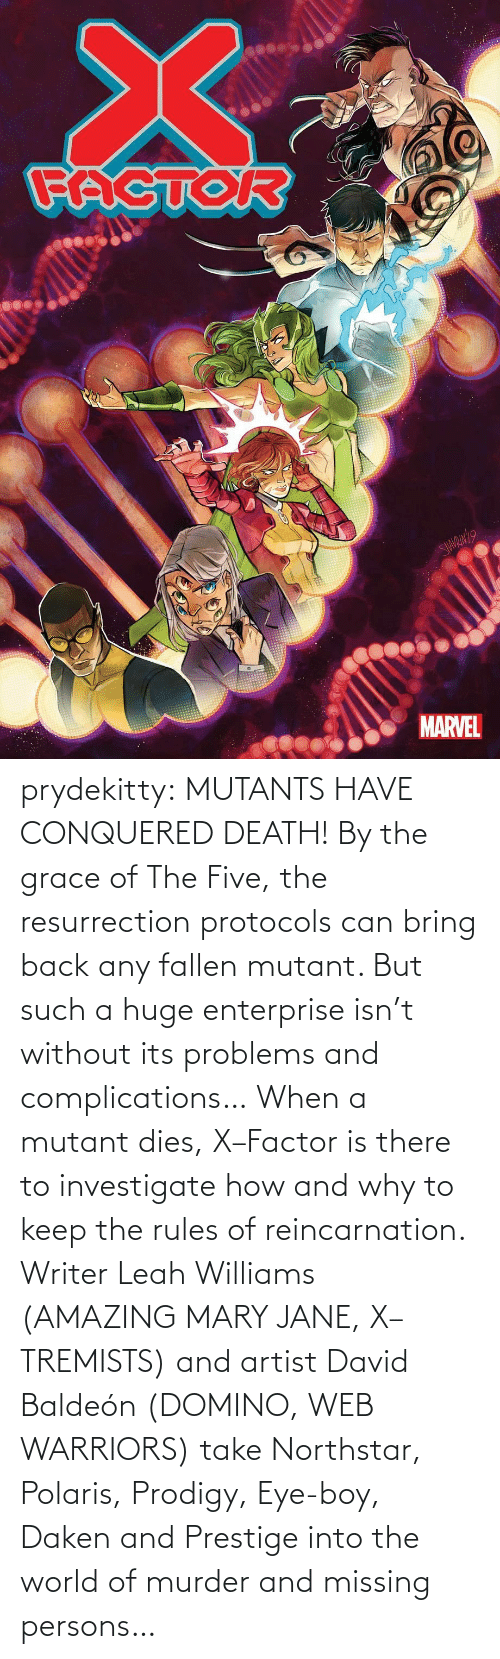 why: prydekitty:  MUTANTS HAVE CONQUERED DEATH! By the grace of The Five, the resurrection protocols can bring back any fallen mutant. But such a huge enterprise isn't without its problems and complications… When a mutant dies, X–Factor is there to investigate how and why to keep the rules of reincarnation. Writer Leah Williams (AMAZING MARY JANE, X–TREMISTS) and artist David Baldeón (DOMINO, WEB WARRIORS) take Northstar, Polaris, Prodigy, Eye-boy, Daken and Prestige into the world of murder and missing persons…